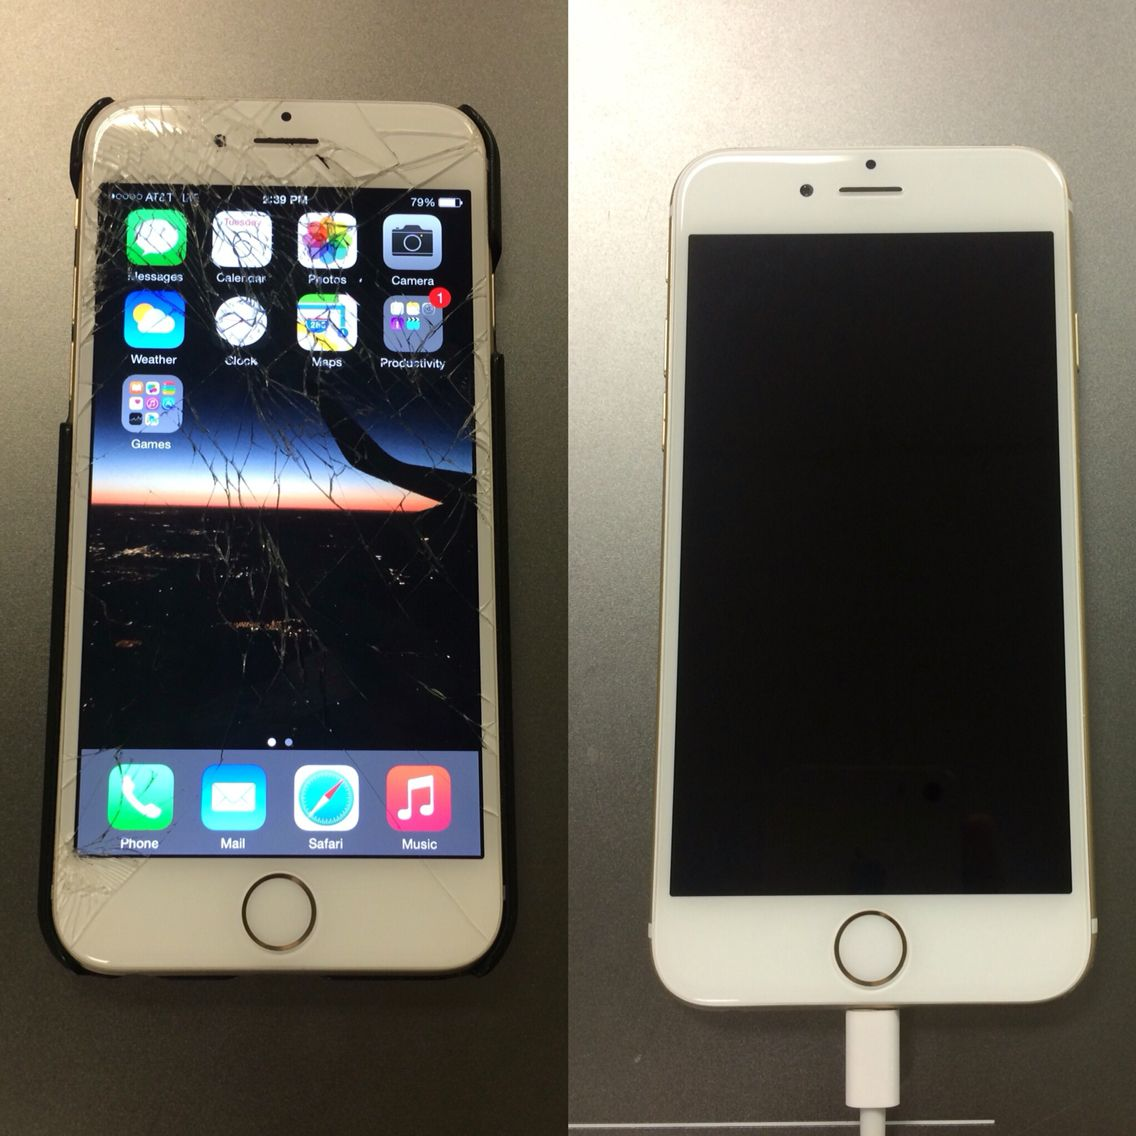 iPhone 6 Repair In Minutes. Get A Fast, Free Quote & Save